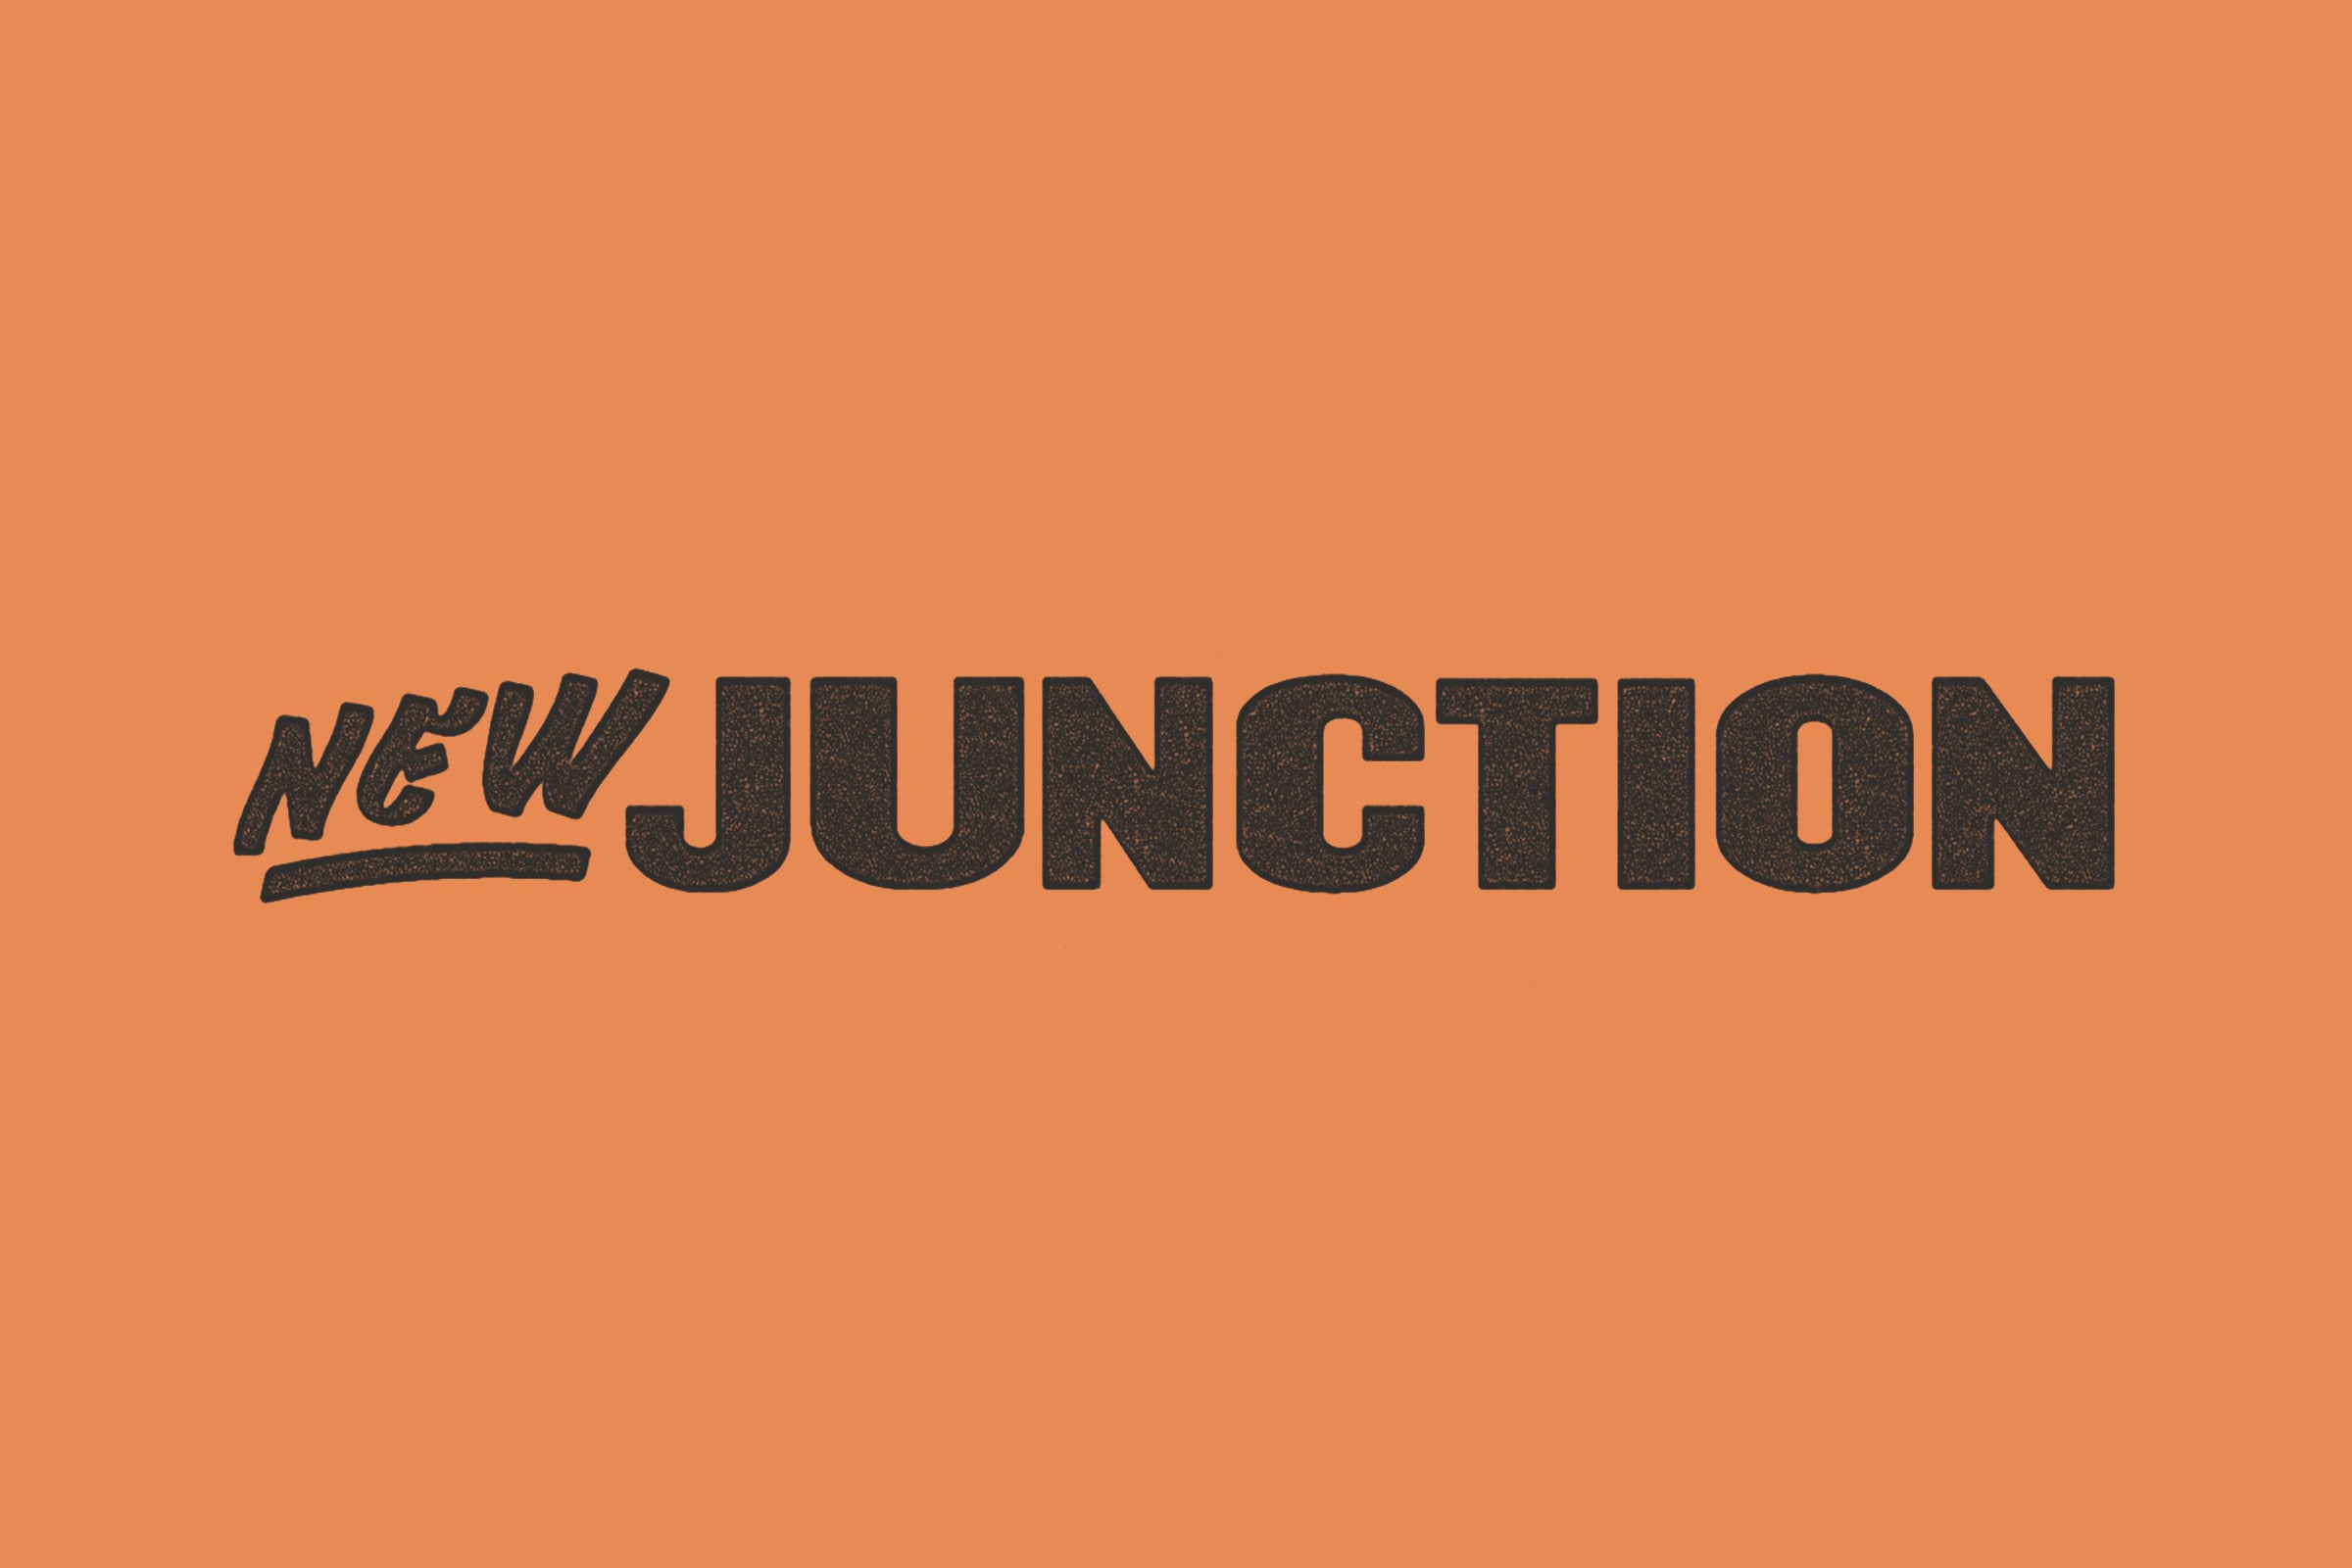 BLO999063_NEW_JUNCTION_IMGS6.jpg